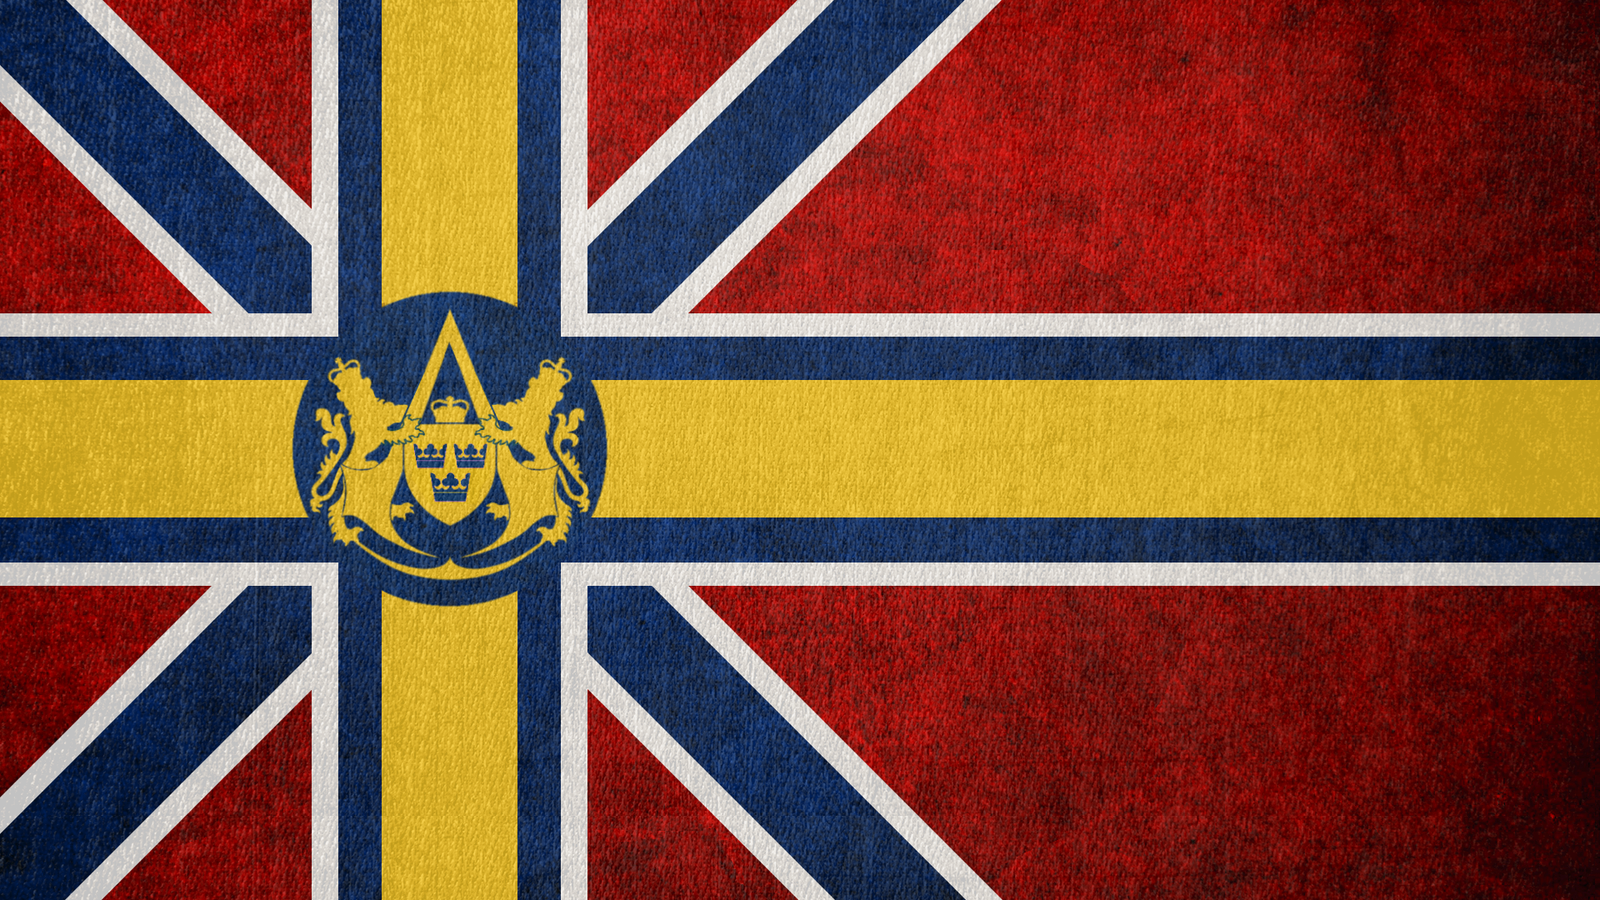 Image Result For Scandinavian Union Flag